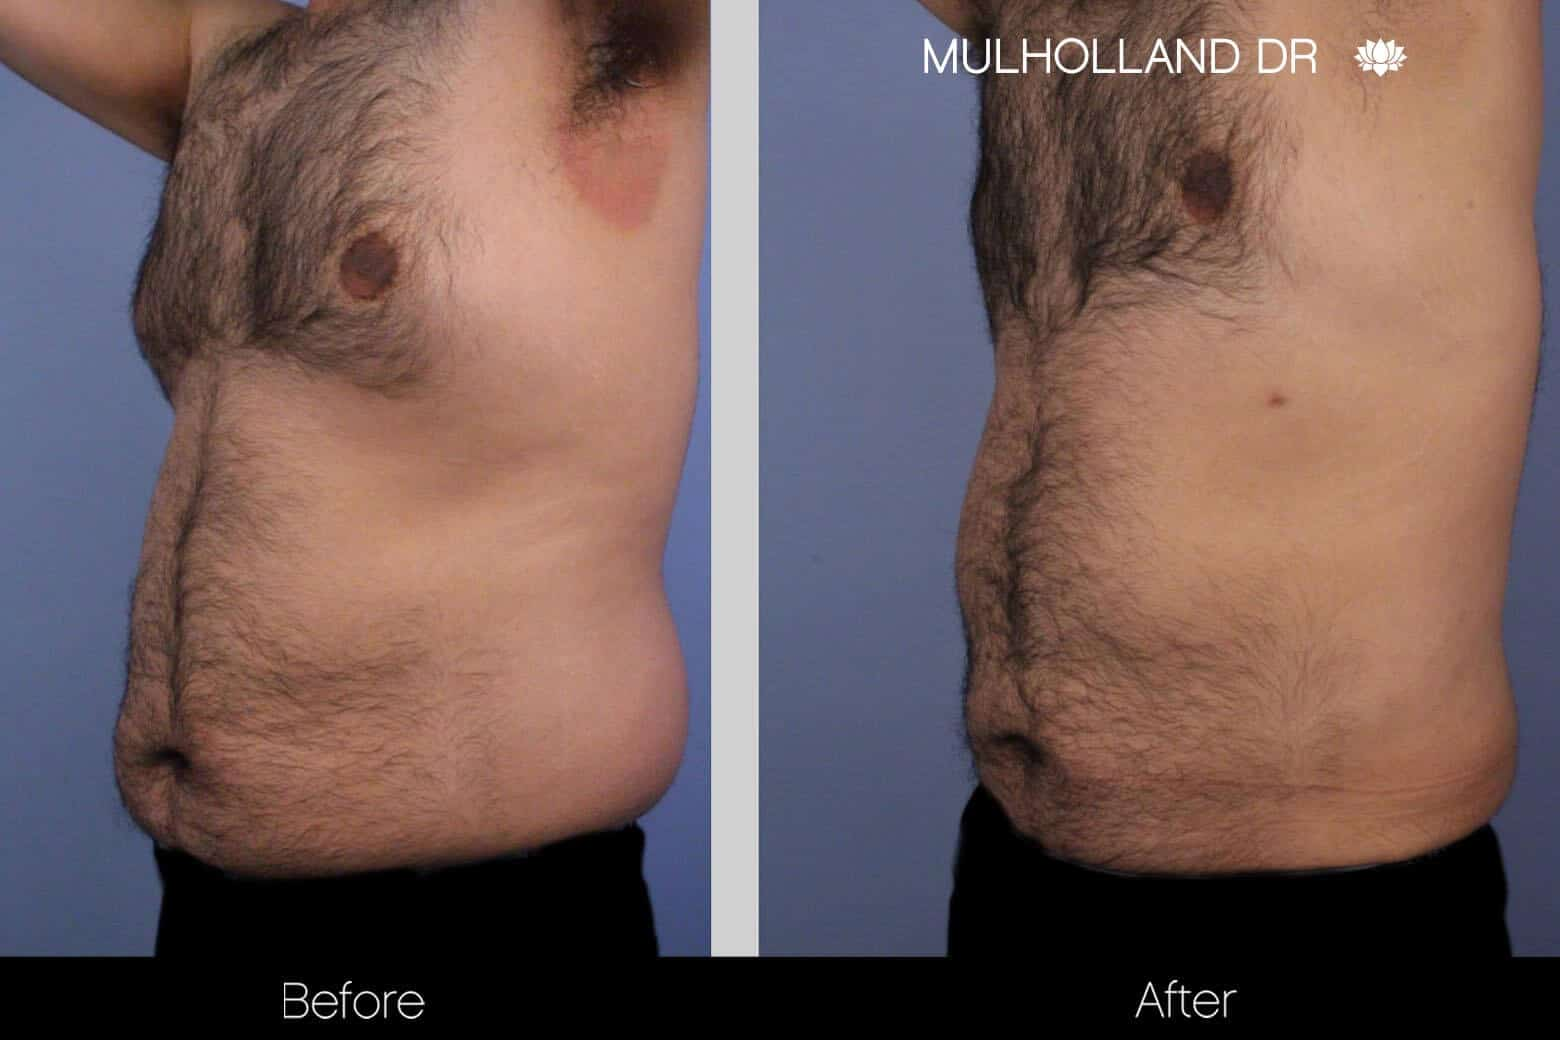 Abdomen Liposuction - Before and After Gallery - Patient Photo 7